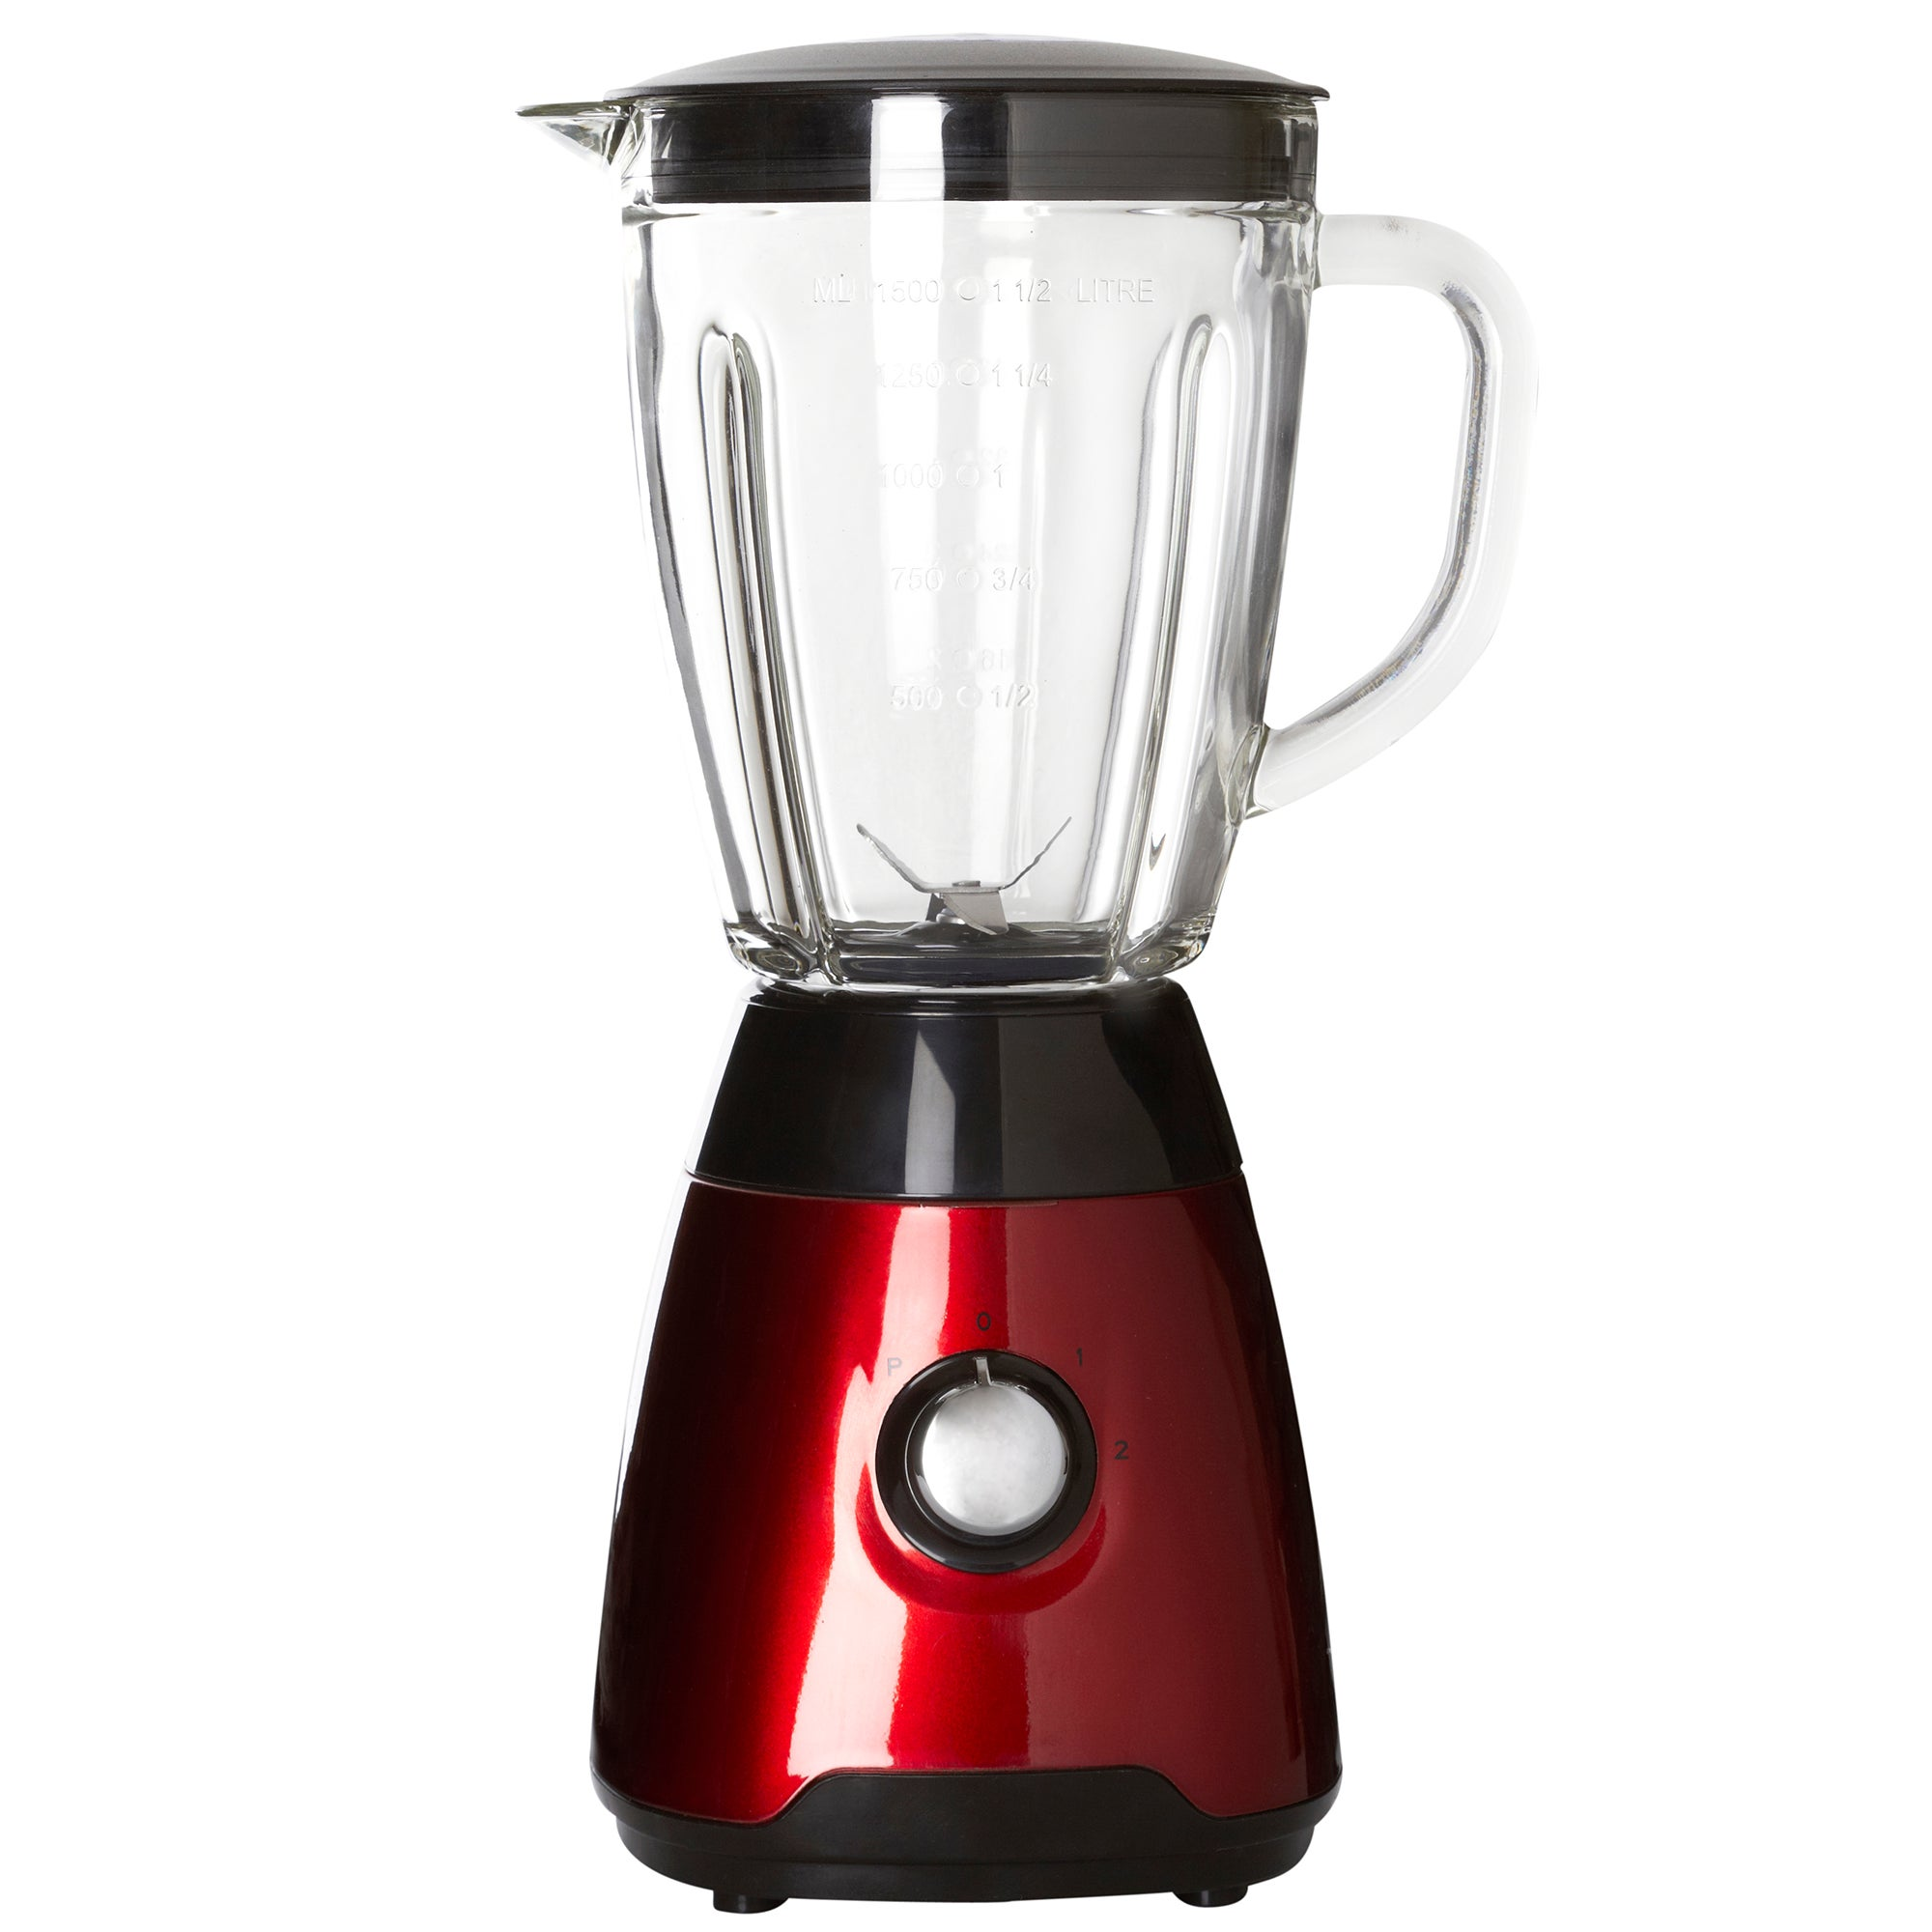 Spectrum Red Collection Glass Jug Blender